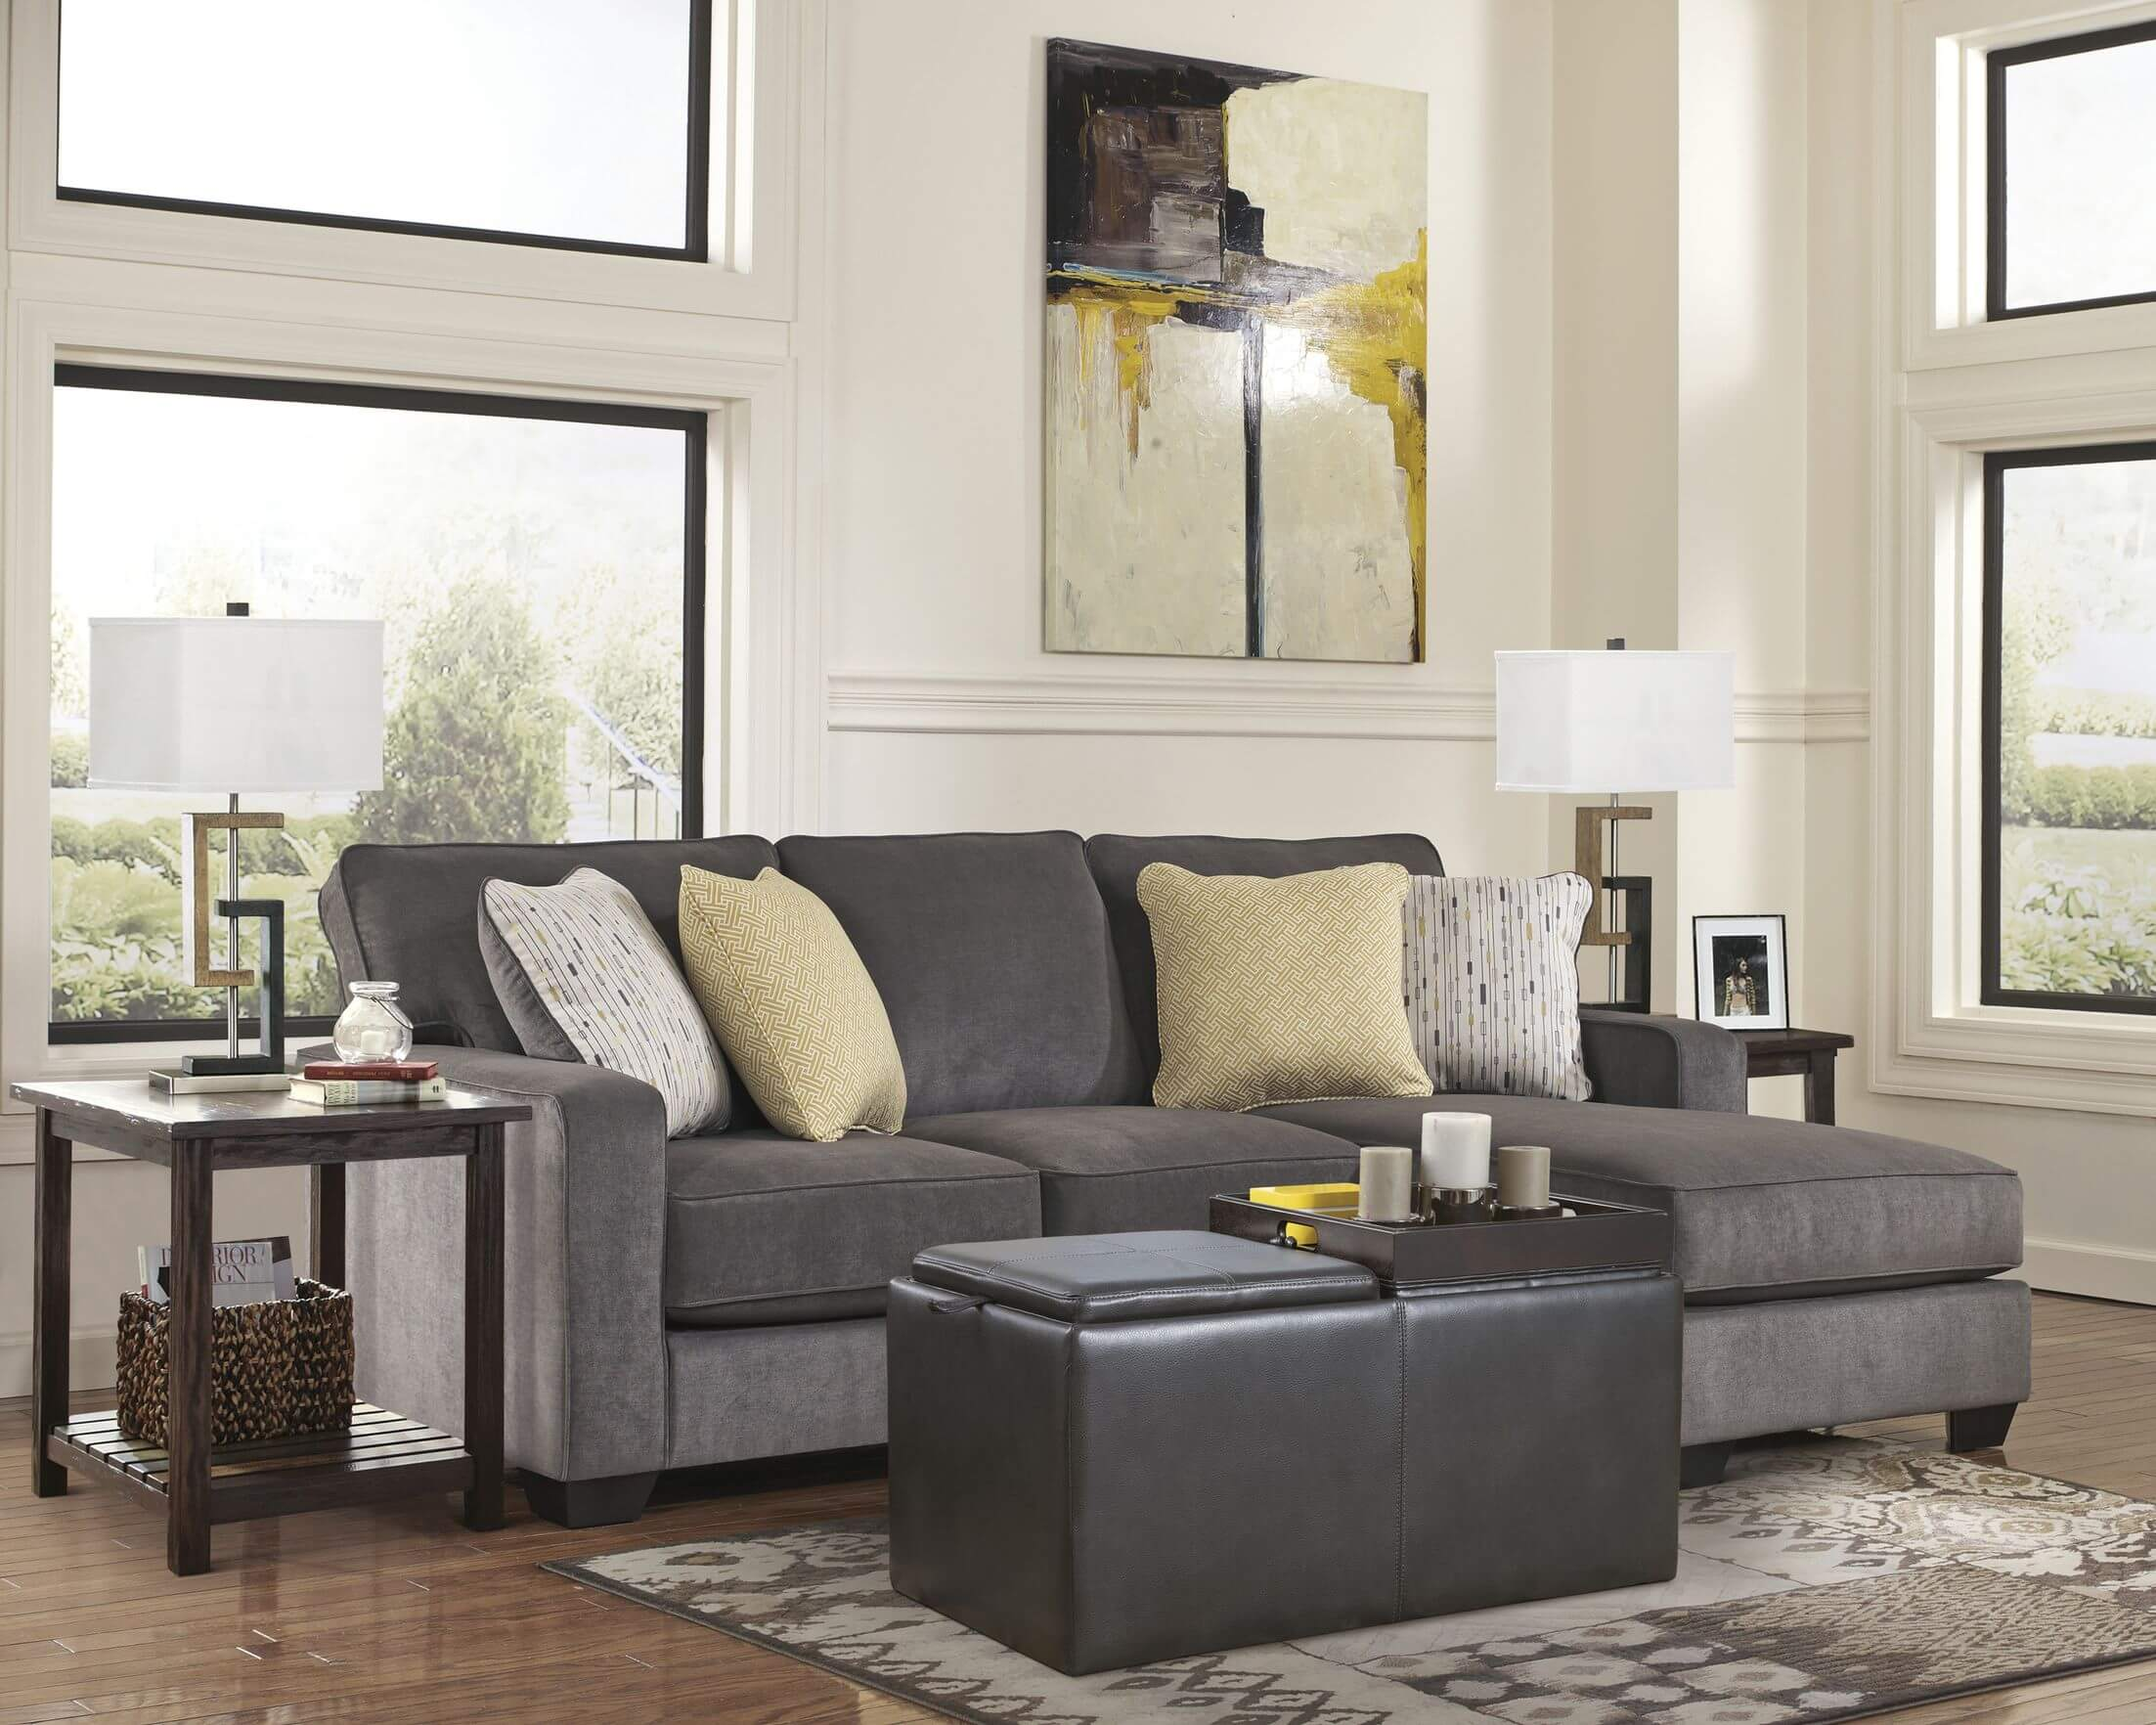 sofa room best contemporary small with of natalia grobania stock end lovely living sectional leather high